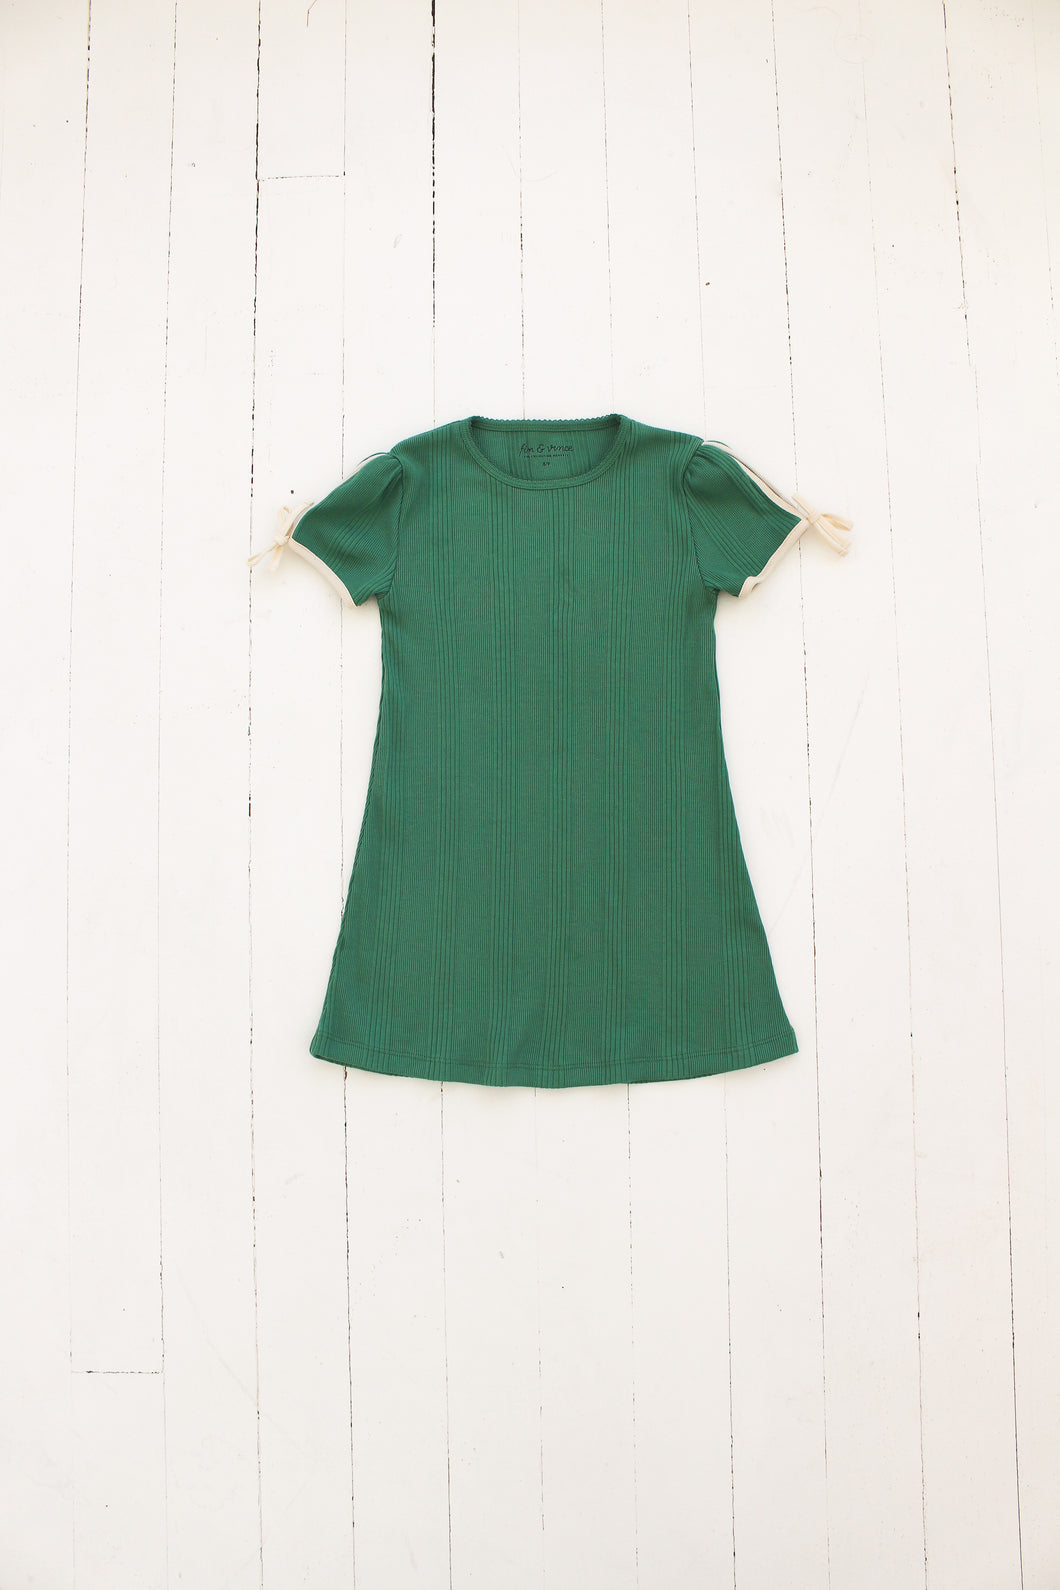 Fin & Vince nightgown - schoolhouse green